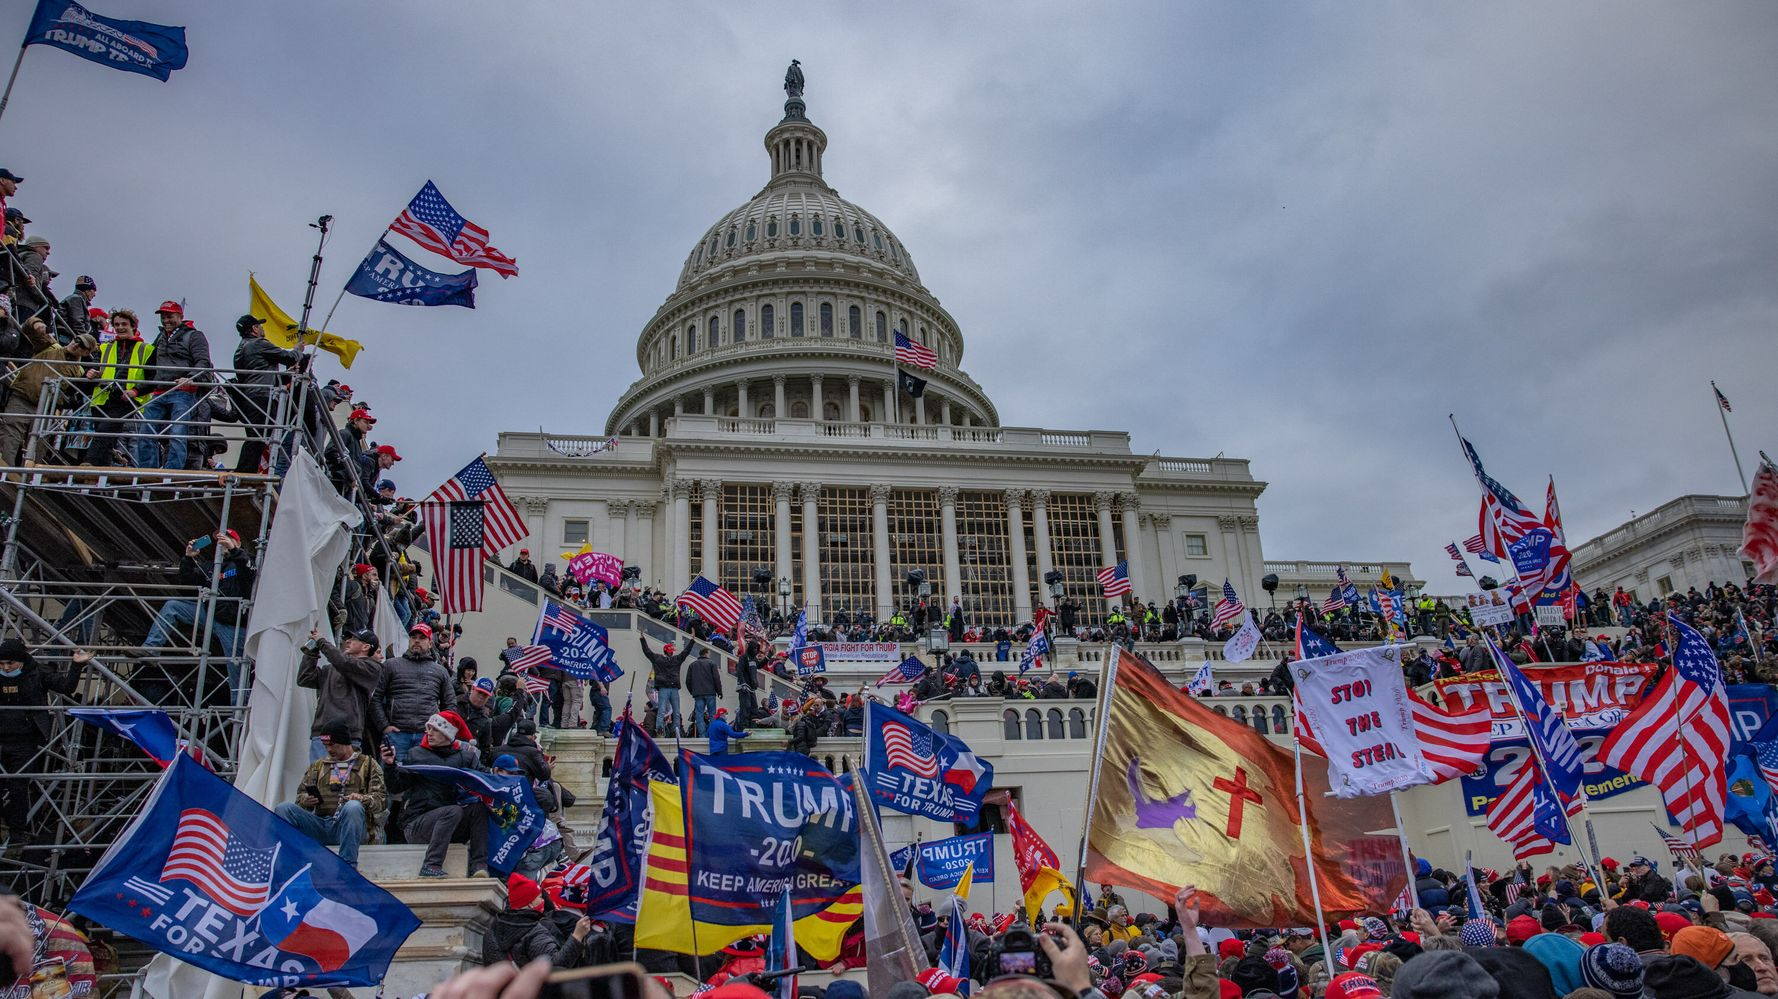 FBI had informant inside the Capitol during Jan 6 riot: report